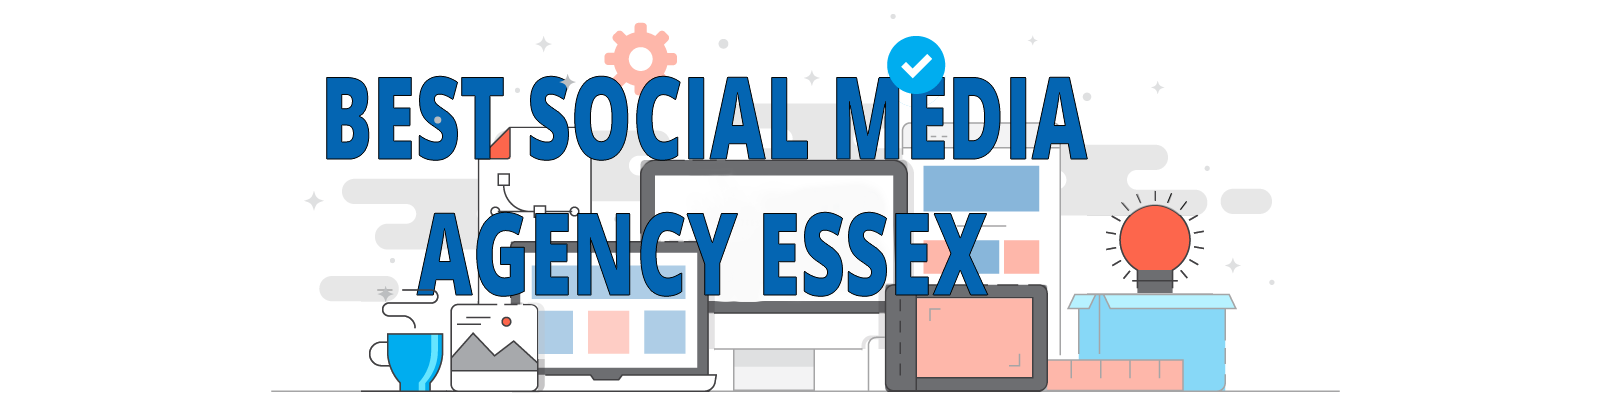 social media marketing agency in Essex to grow your business